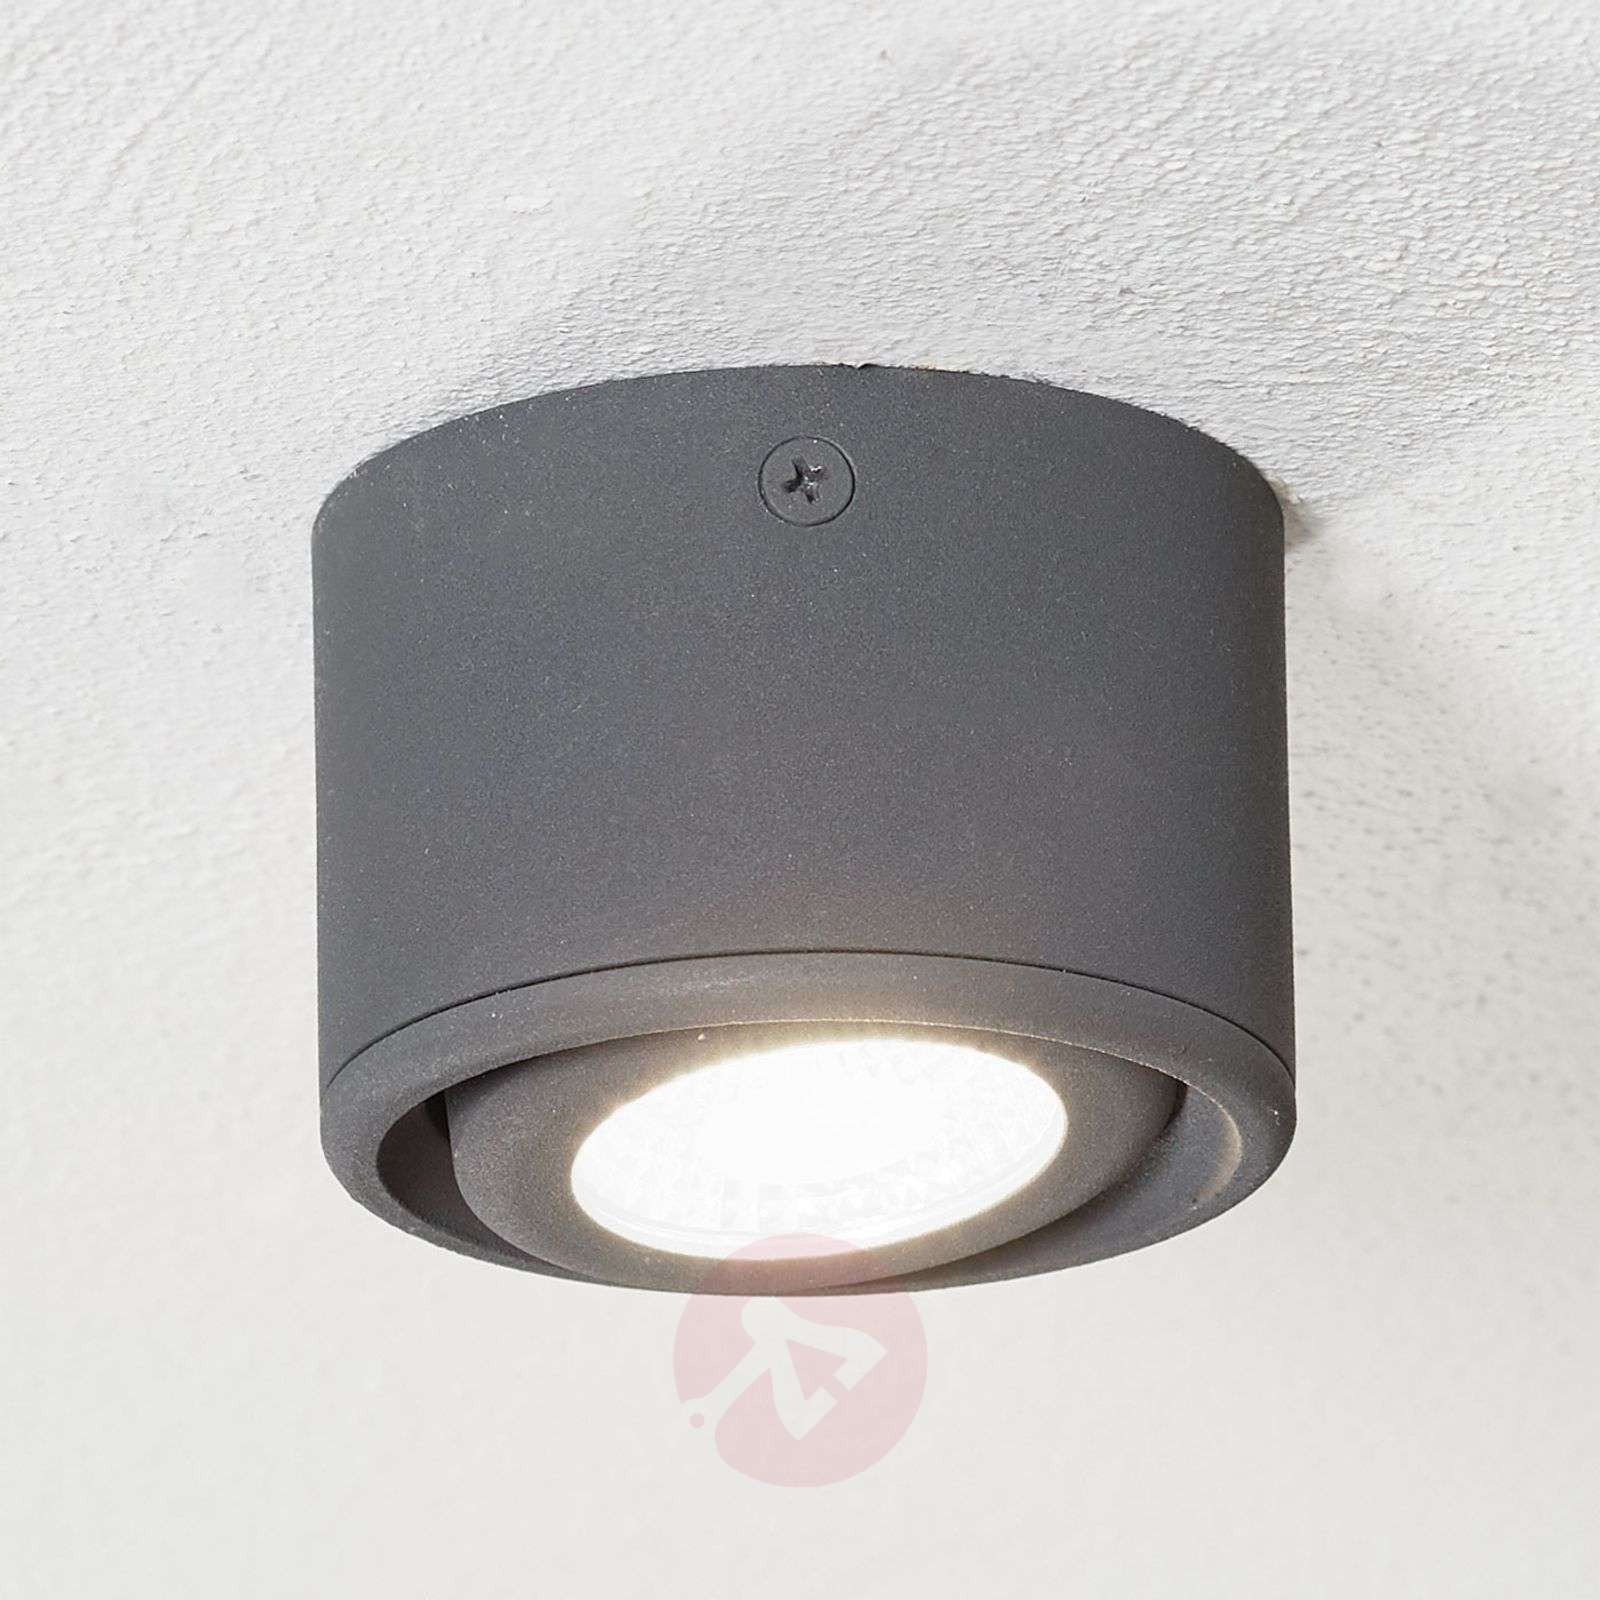 Downlight LED Anzio à tête pivotante, anthracite-3502660-03